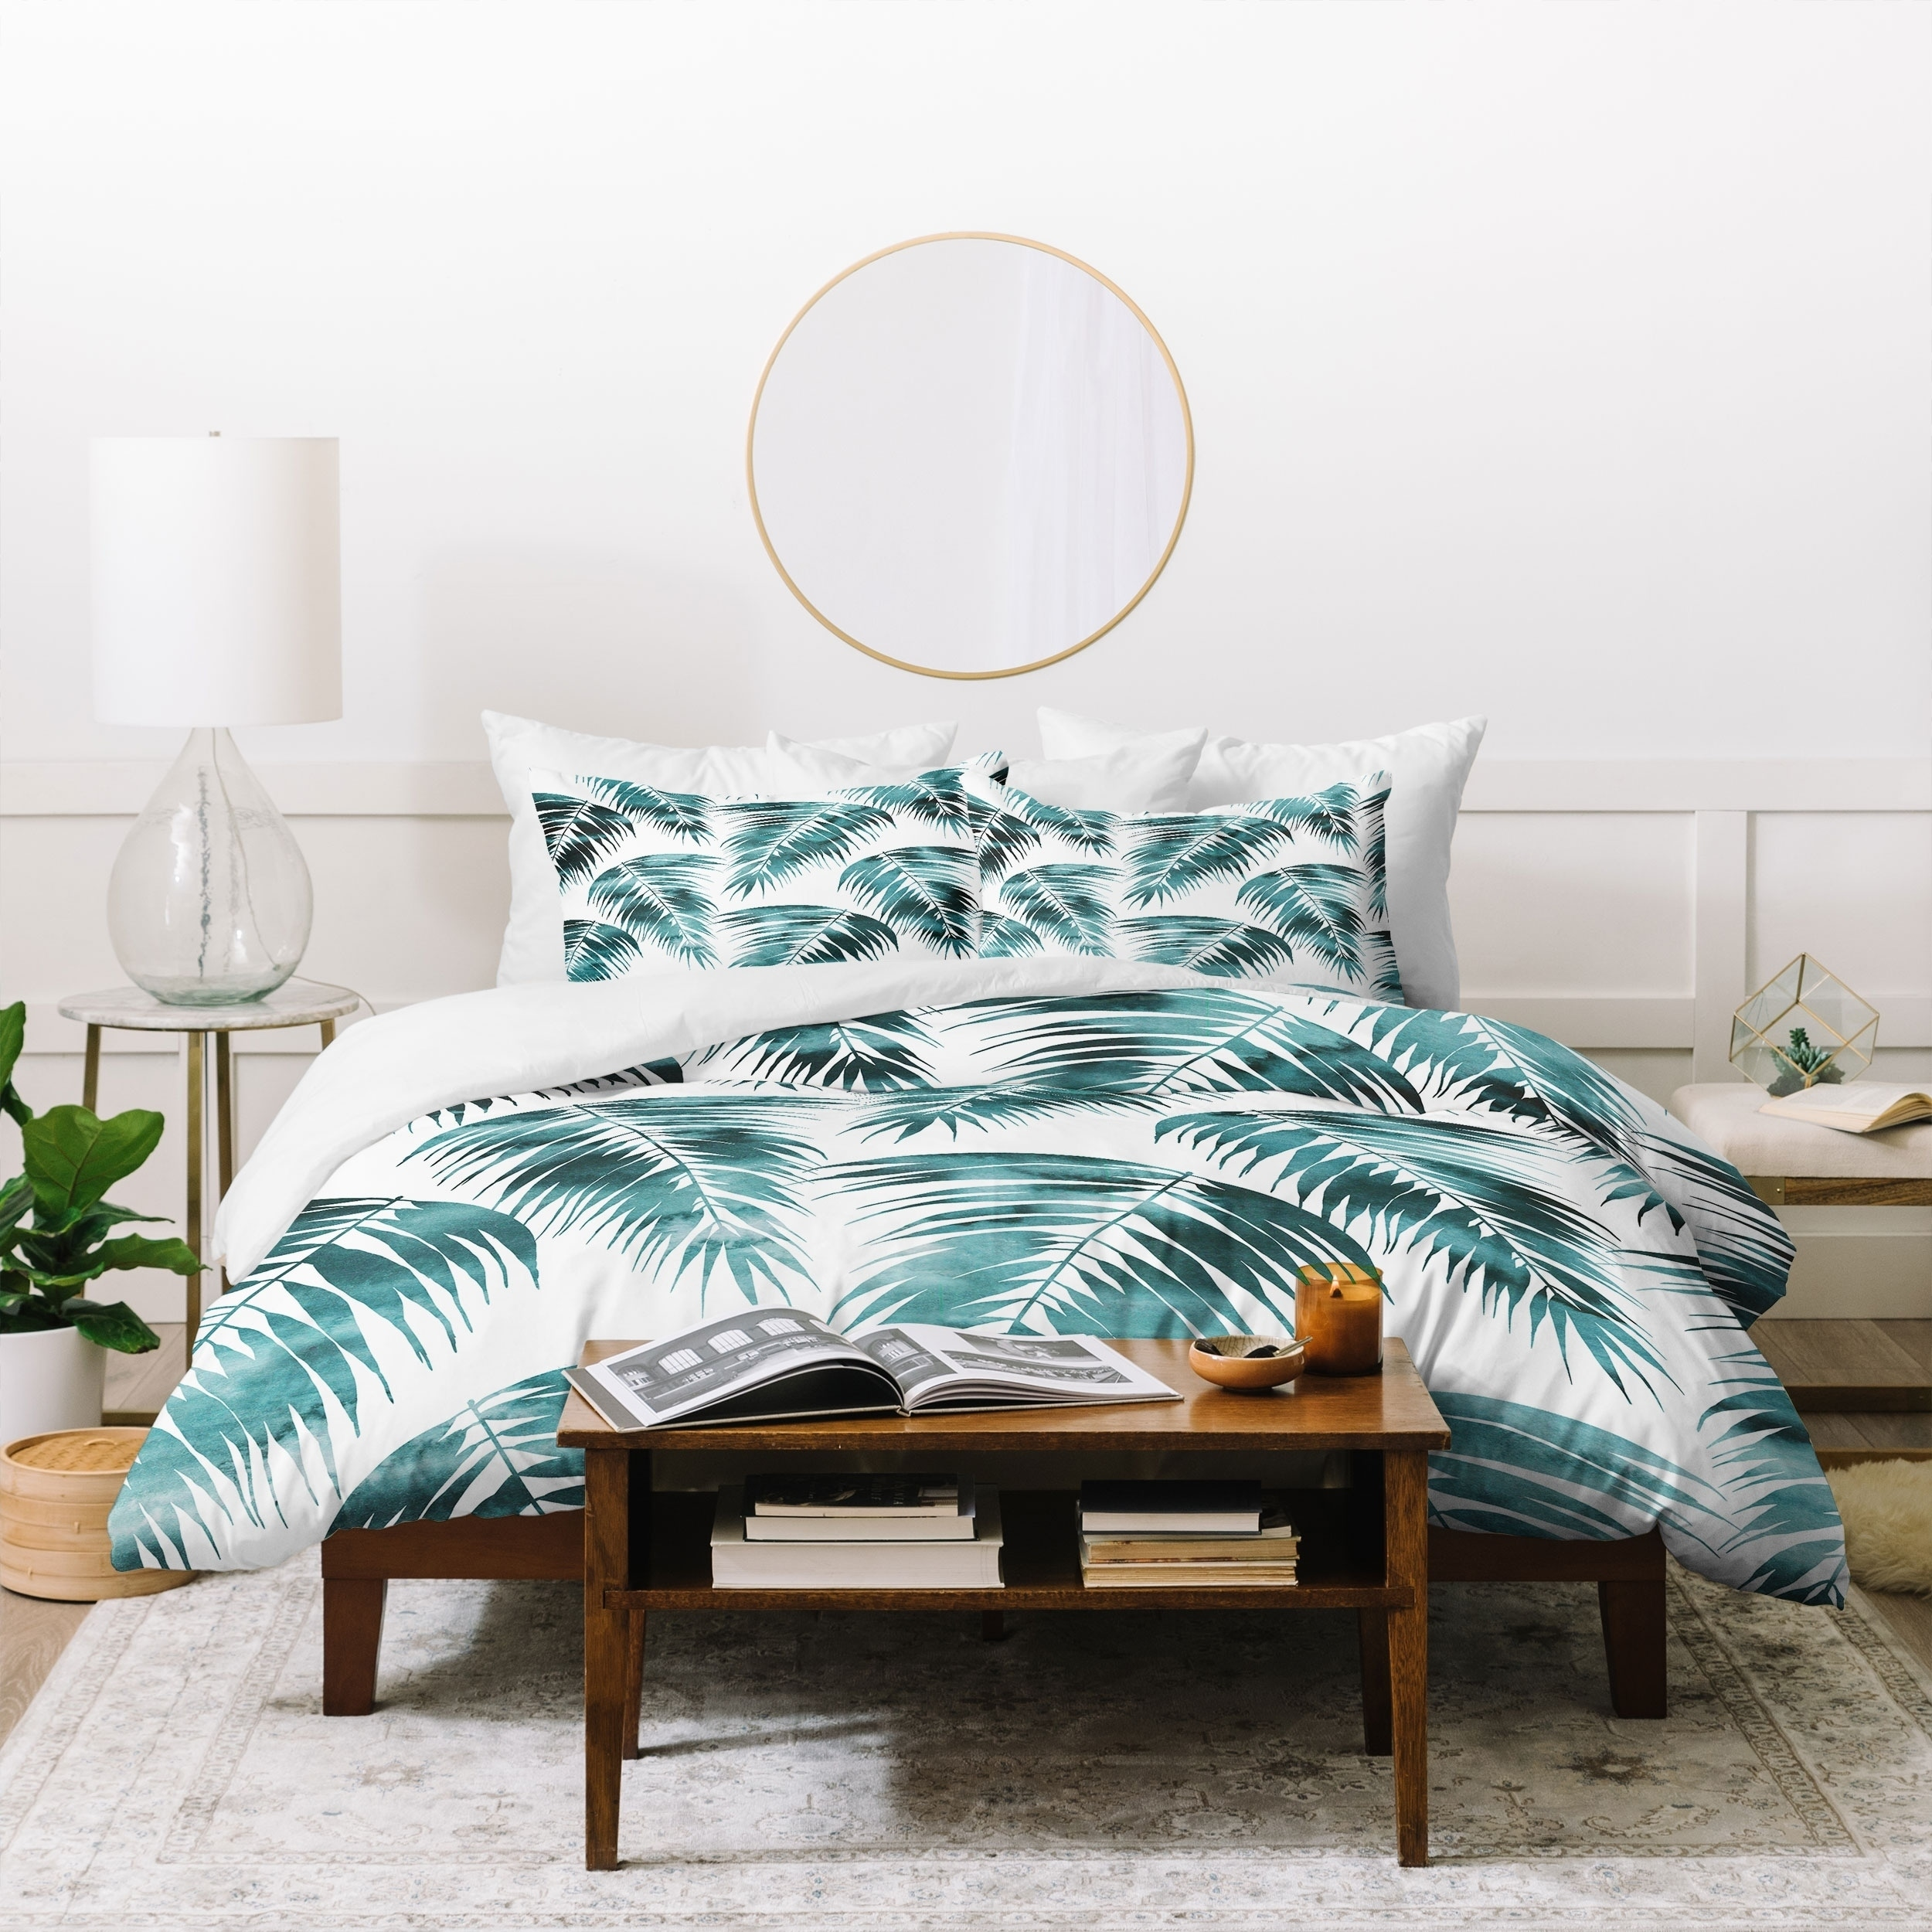 Shop Schatzi Brown Maui Palm Green And White Duvet Cover Set On